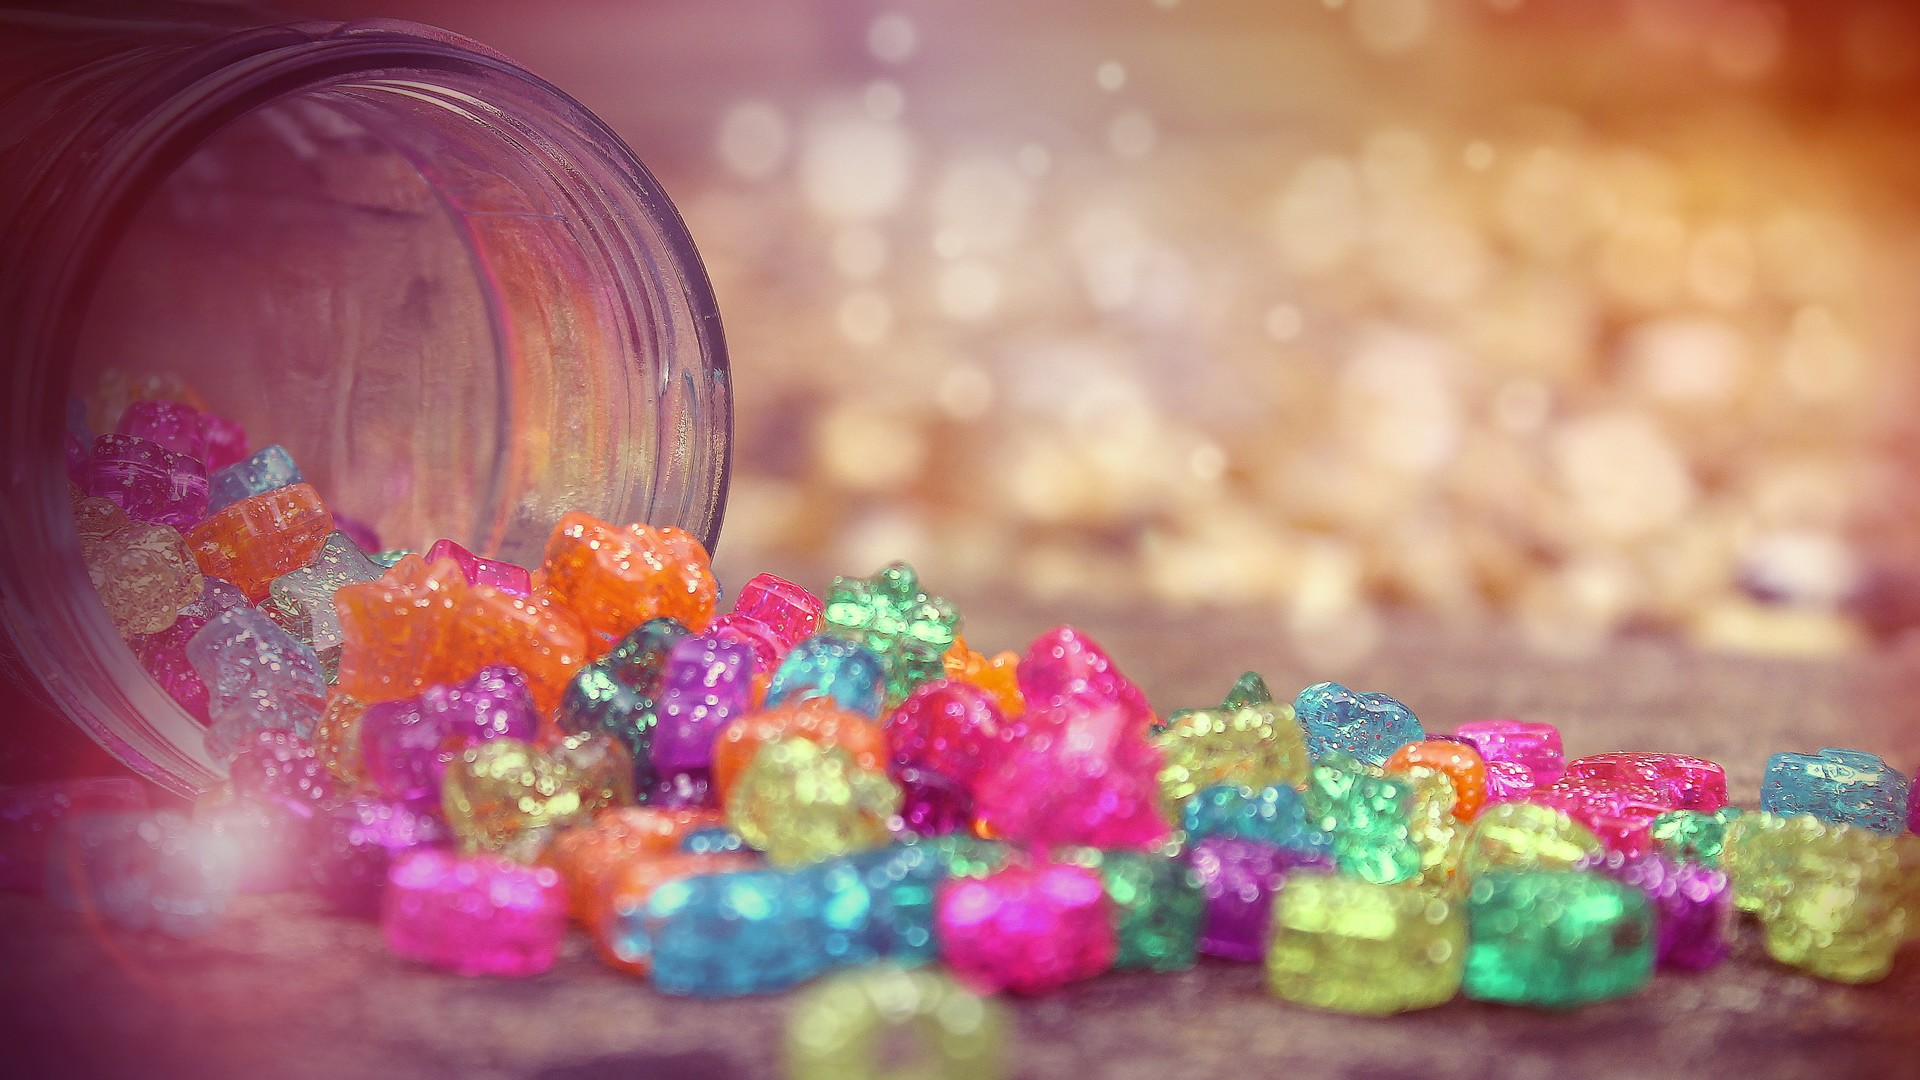 Colorful Food Wallpaper Free Download: Candy Computer Wallpapers, Desktop Backgrounds